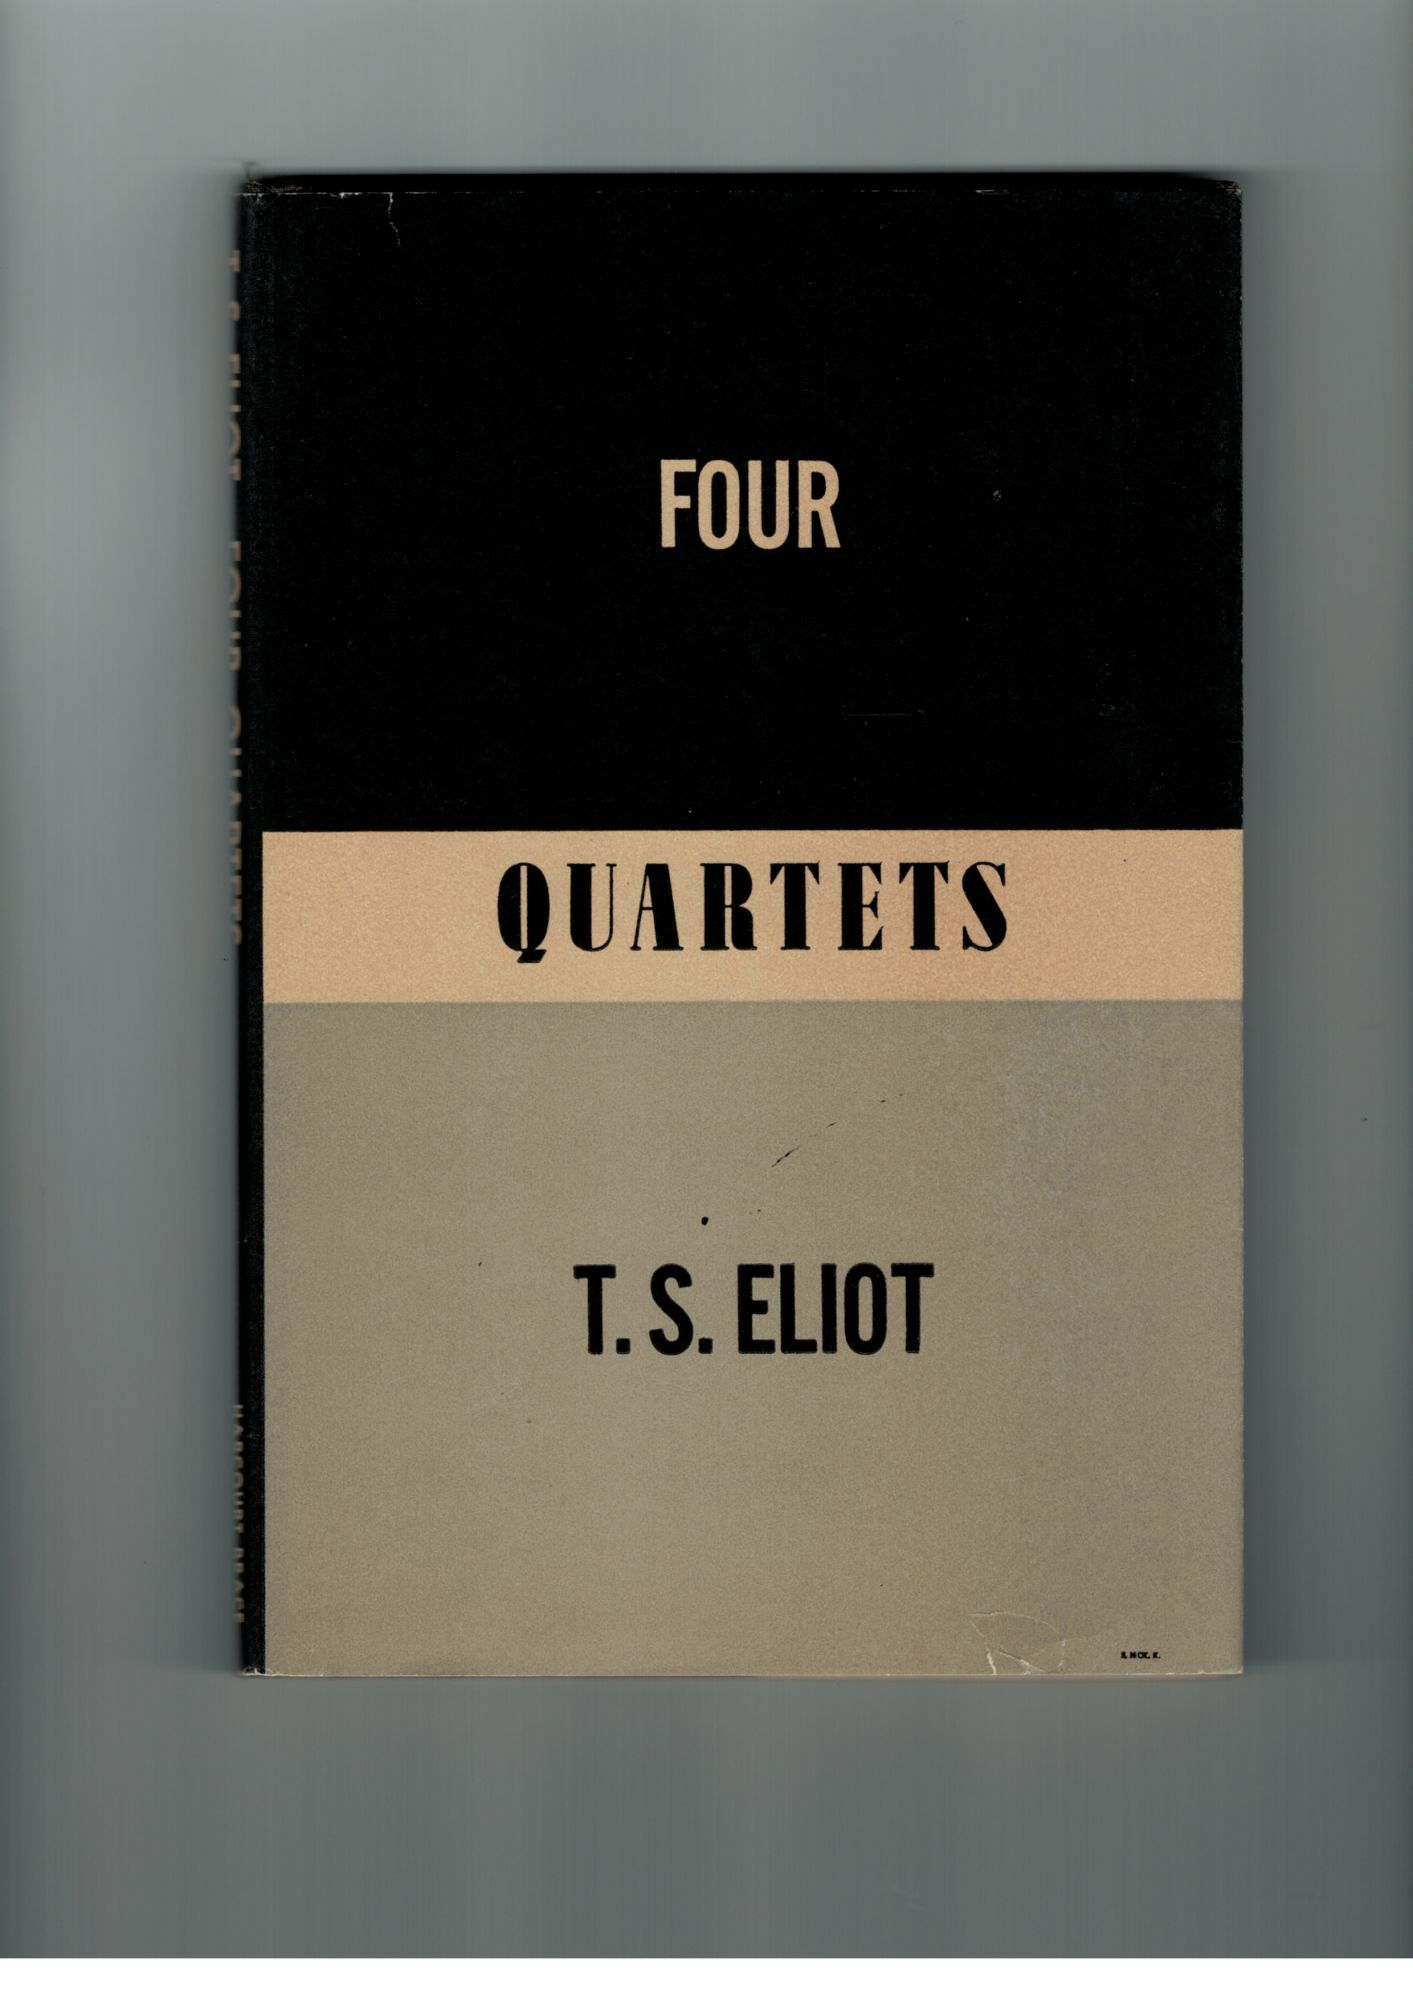 the four quartets Four quartets notes four quartets a cycle of four poems by ts eliot, published individually from 1936 to 1942 and in book form in 1943.